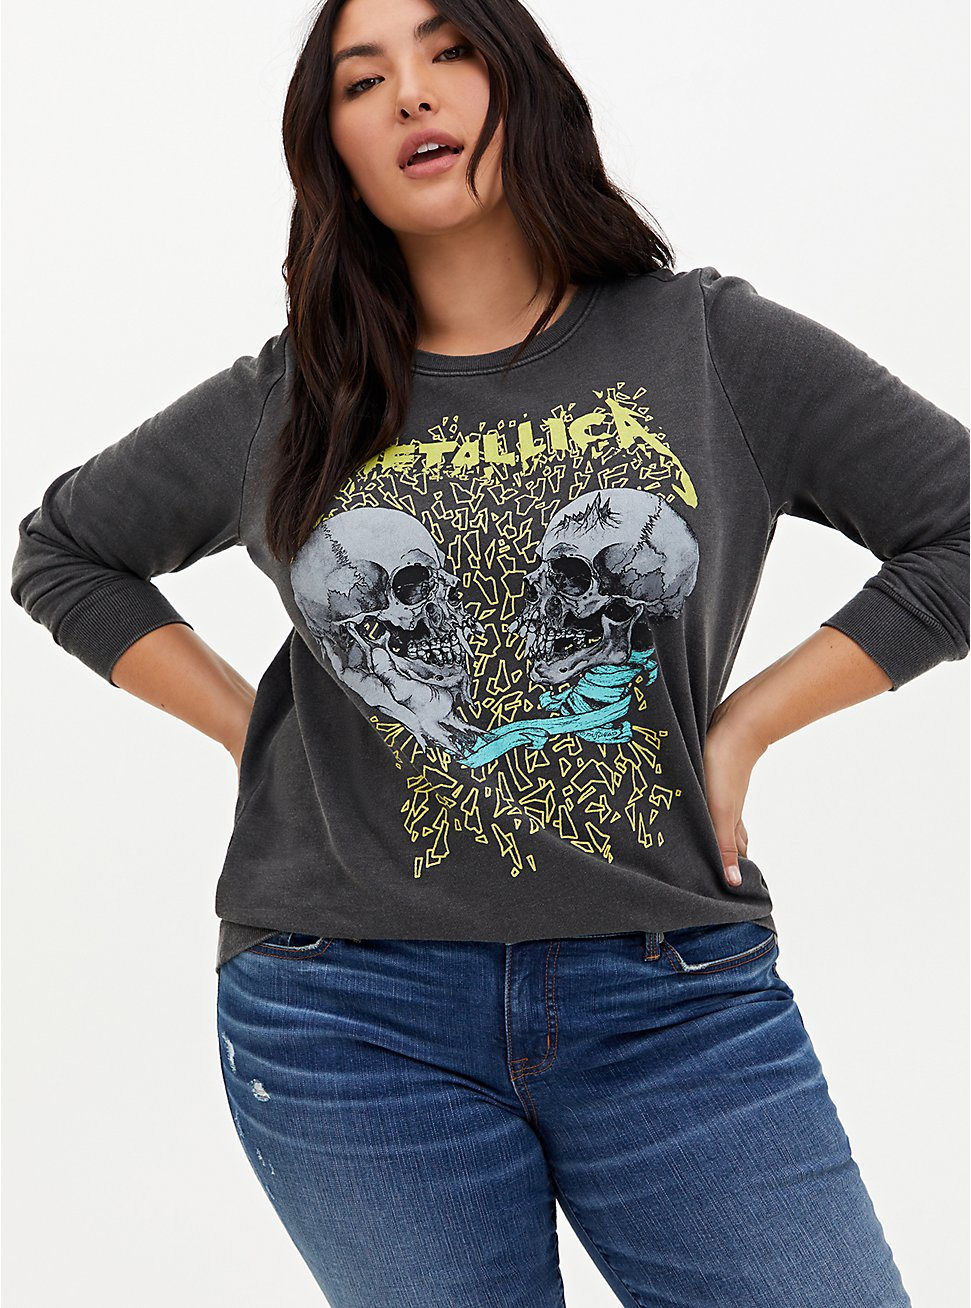 Metallica Skull Grey Mineral Wash Pullover Sweatshirt, DEEP BLACK, hi-res